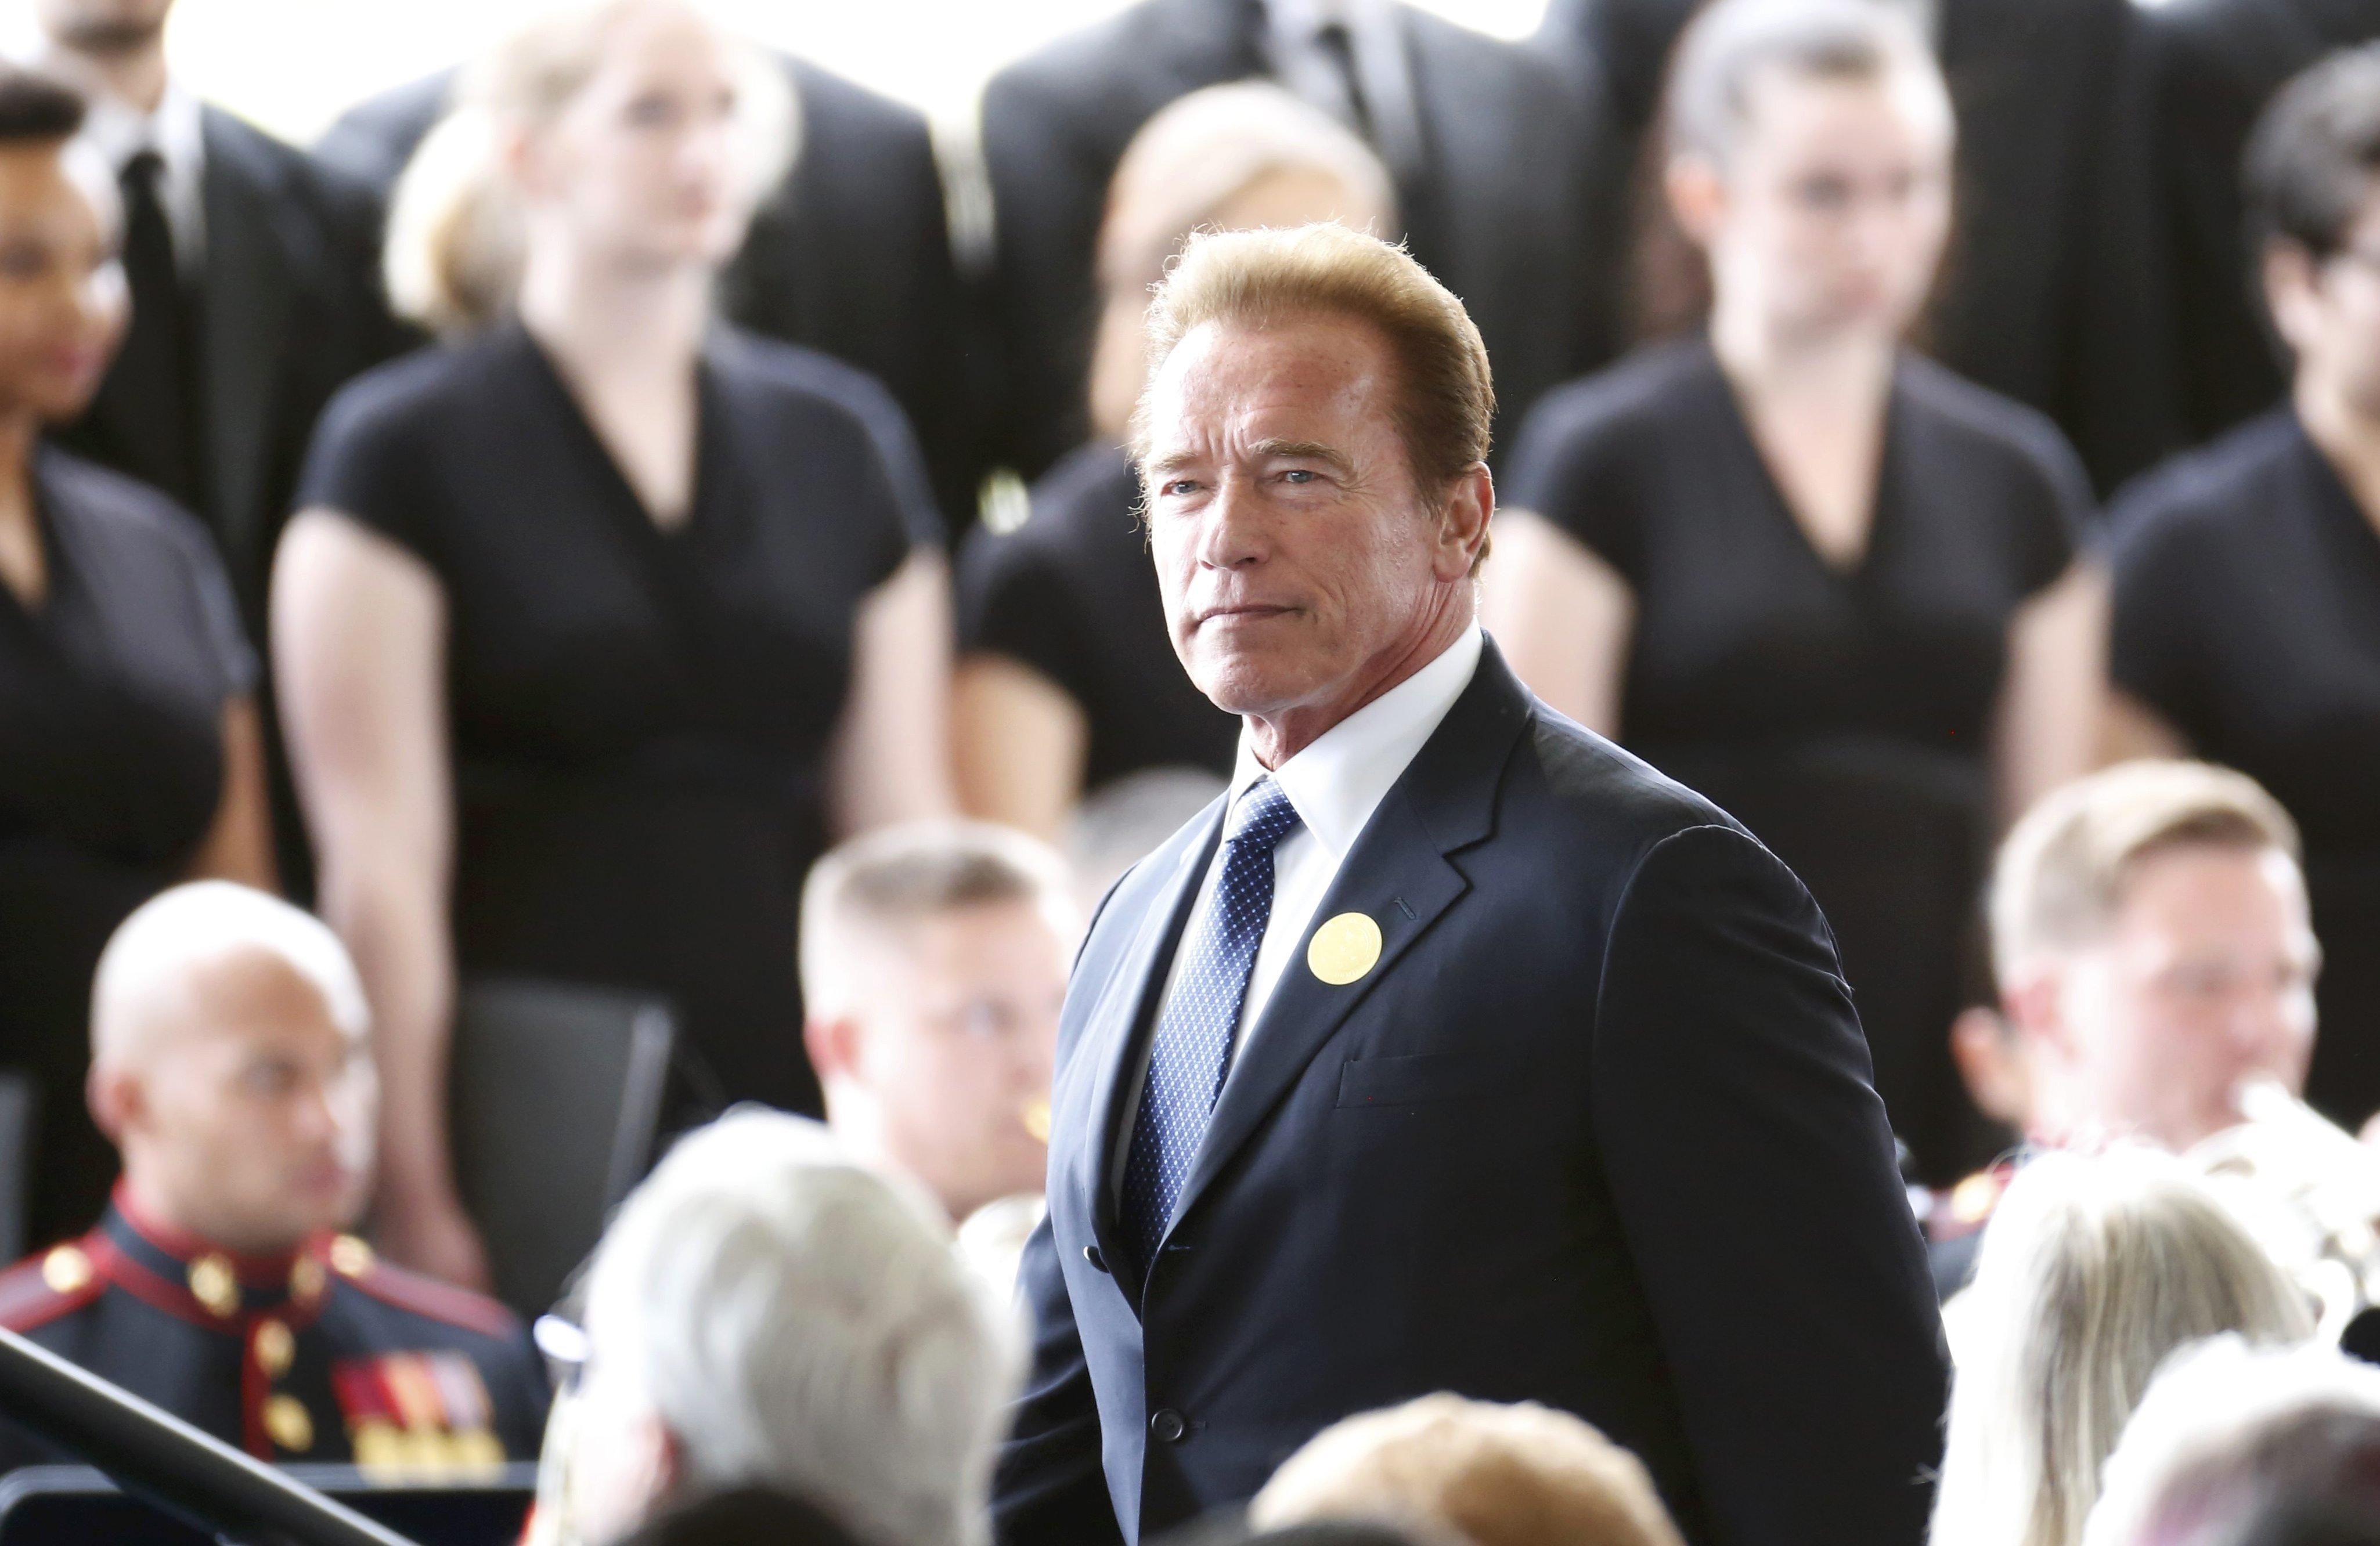 Former California Governor Arnold Schwarzenegger arrives for the funeral  at the Ronald Reagan Presidential Library in Simi Valley, Calif., March 11, 2016.